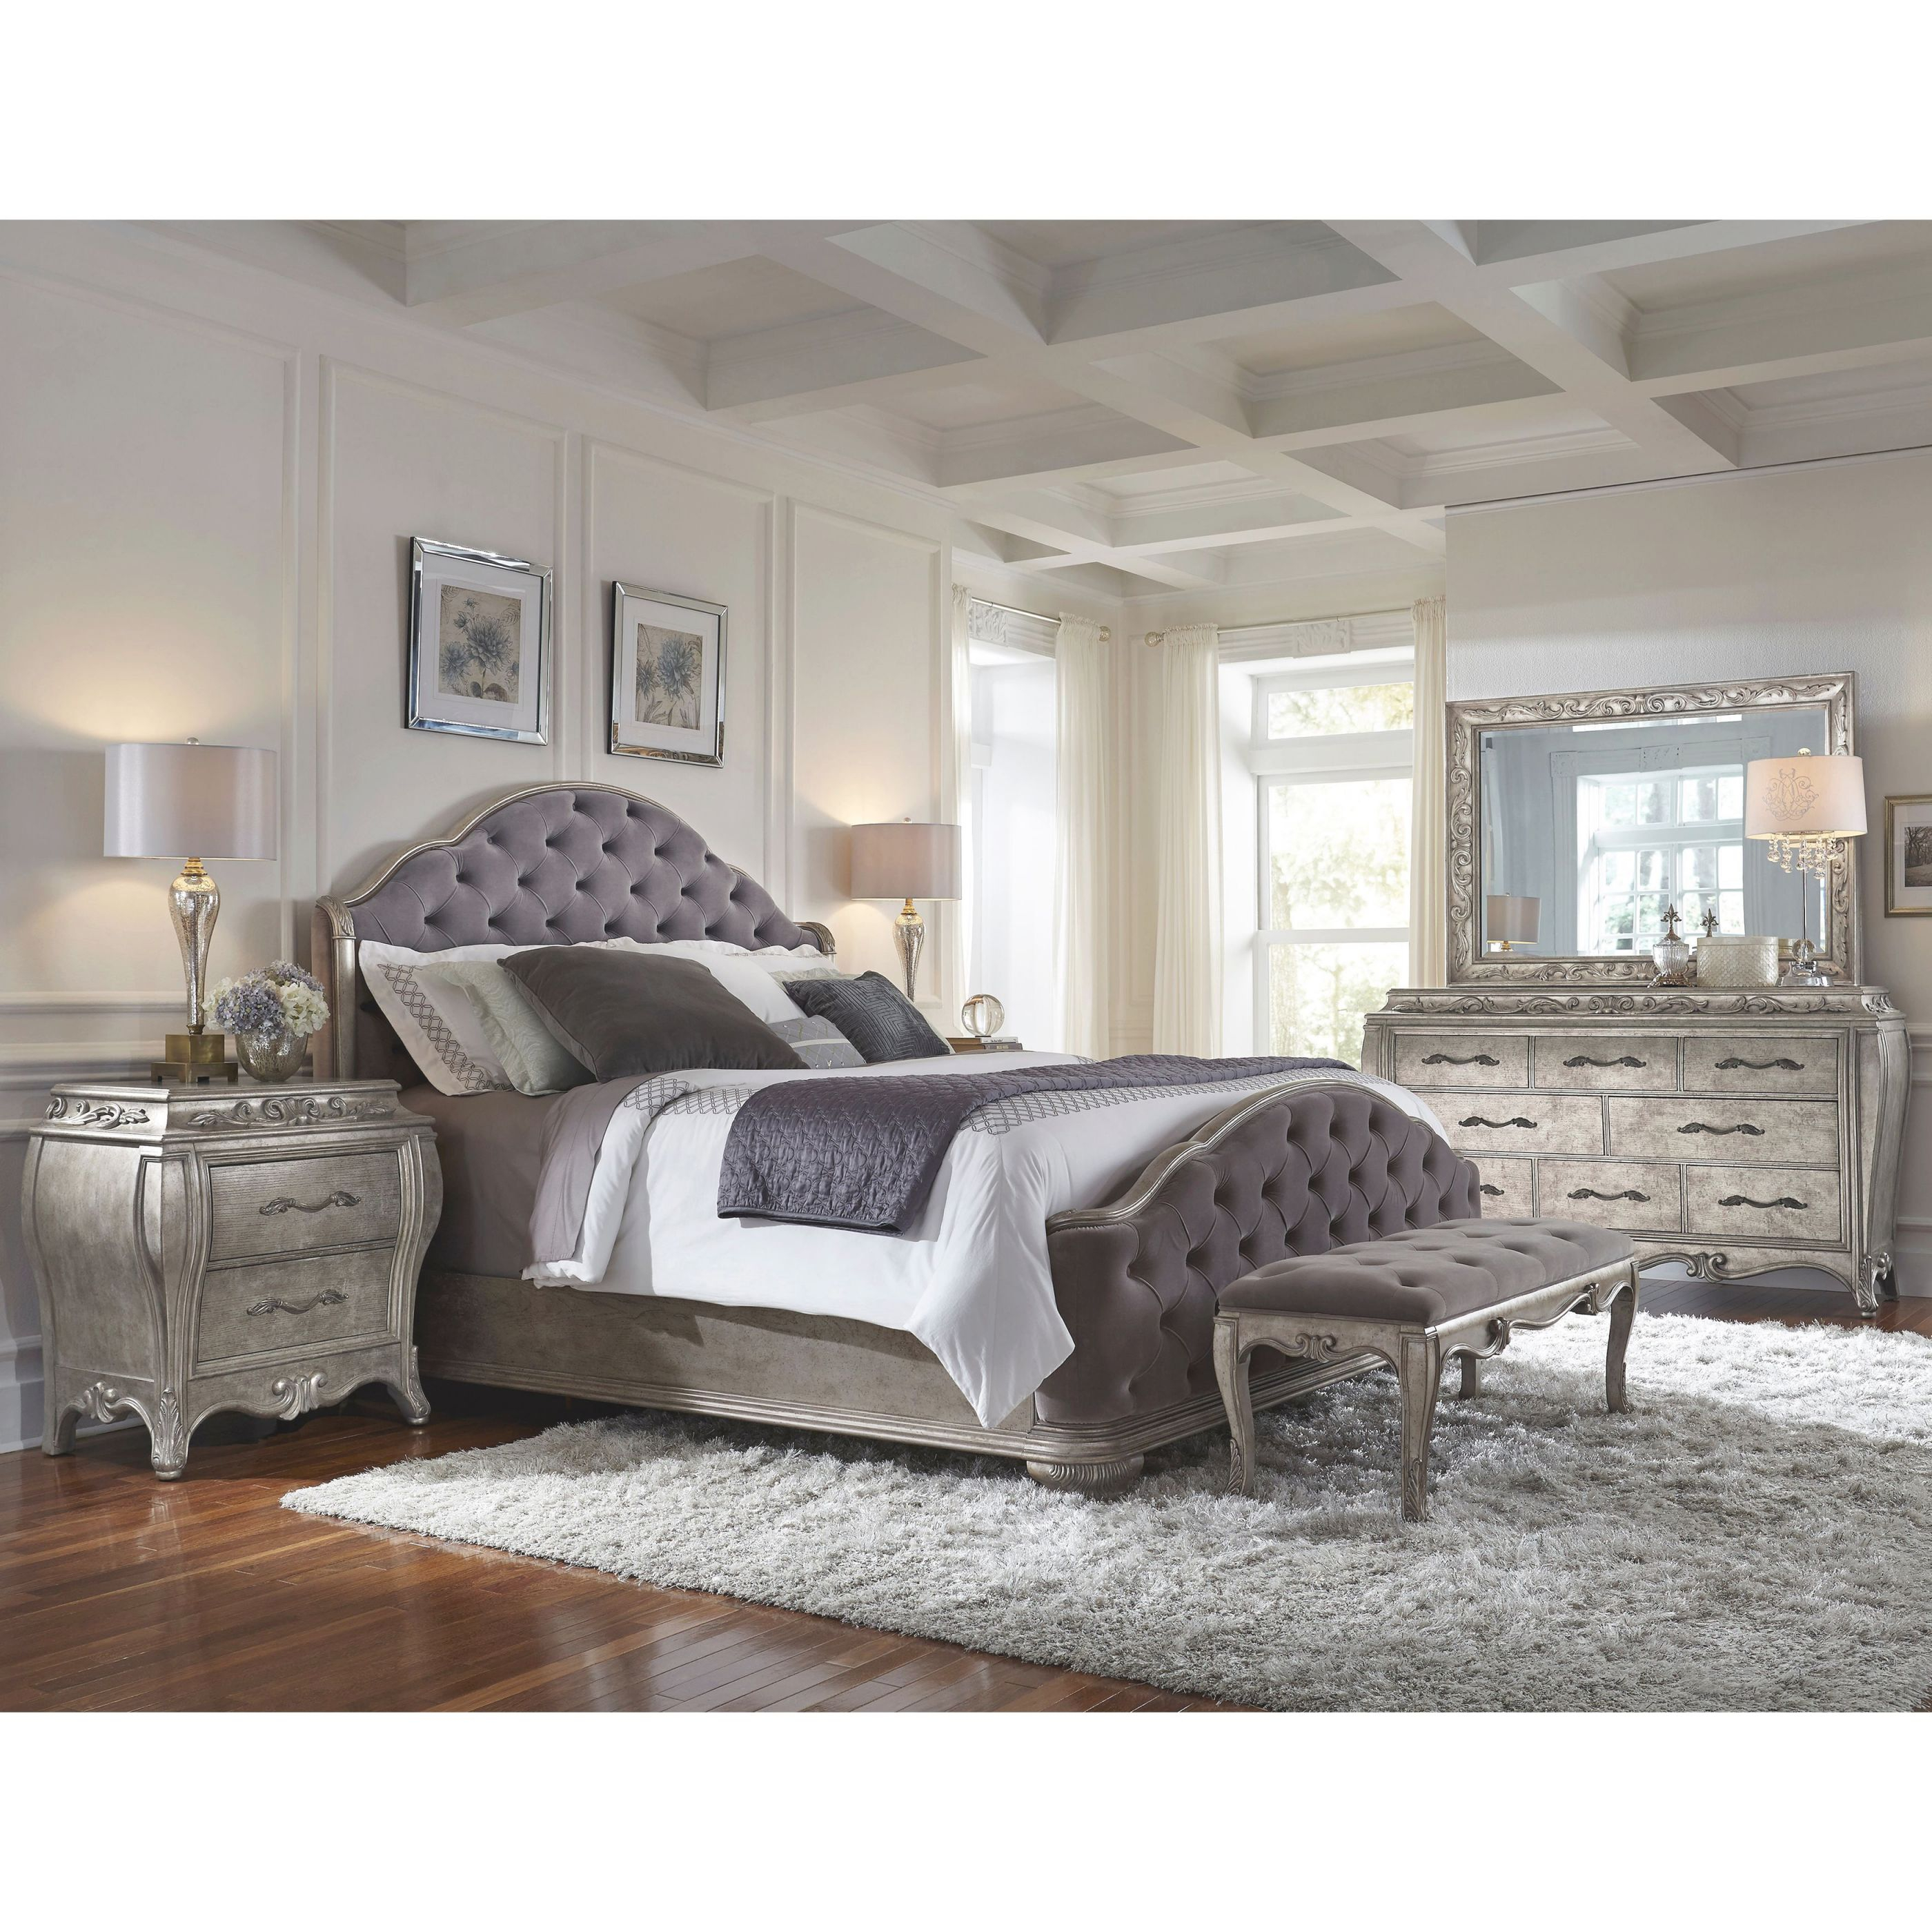 Anastasia 6-Piece Queen-Size Bedroom Set within Bedroom Set Queen Size